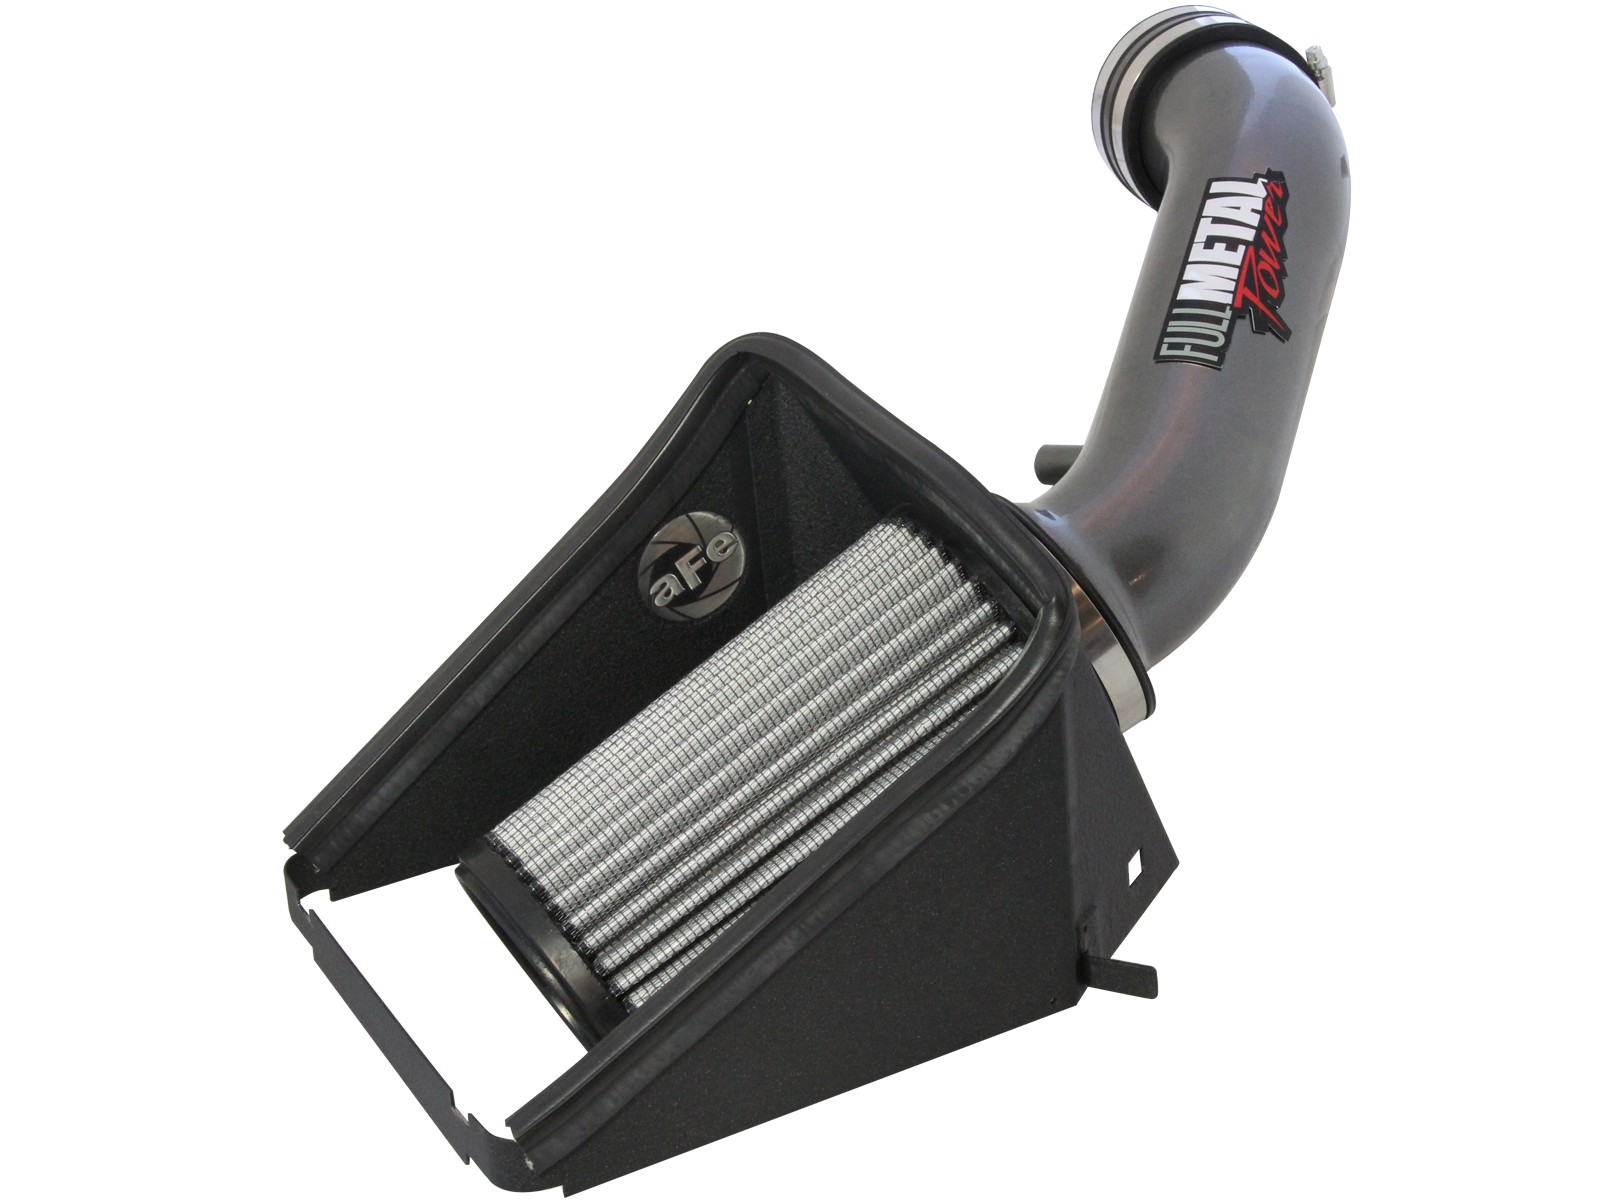 aFe POWER F2-06202 FULL METAL Power Stage-2 Pro DRY S Cold Air Intake System